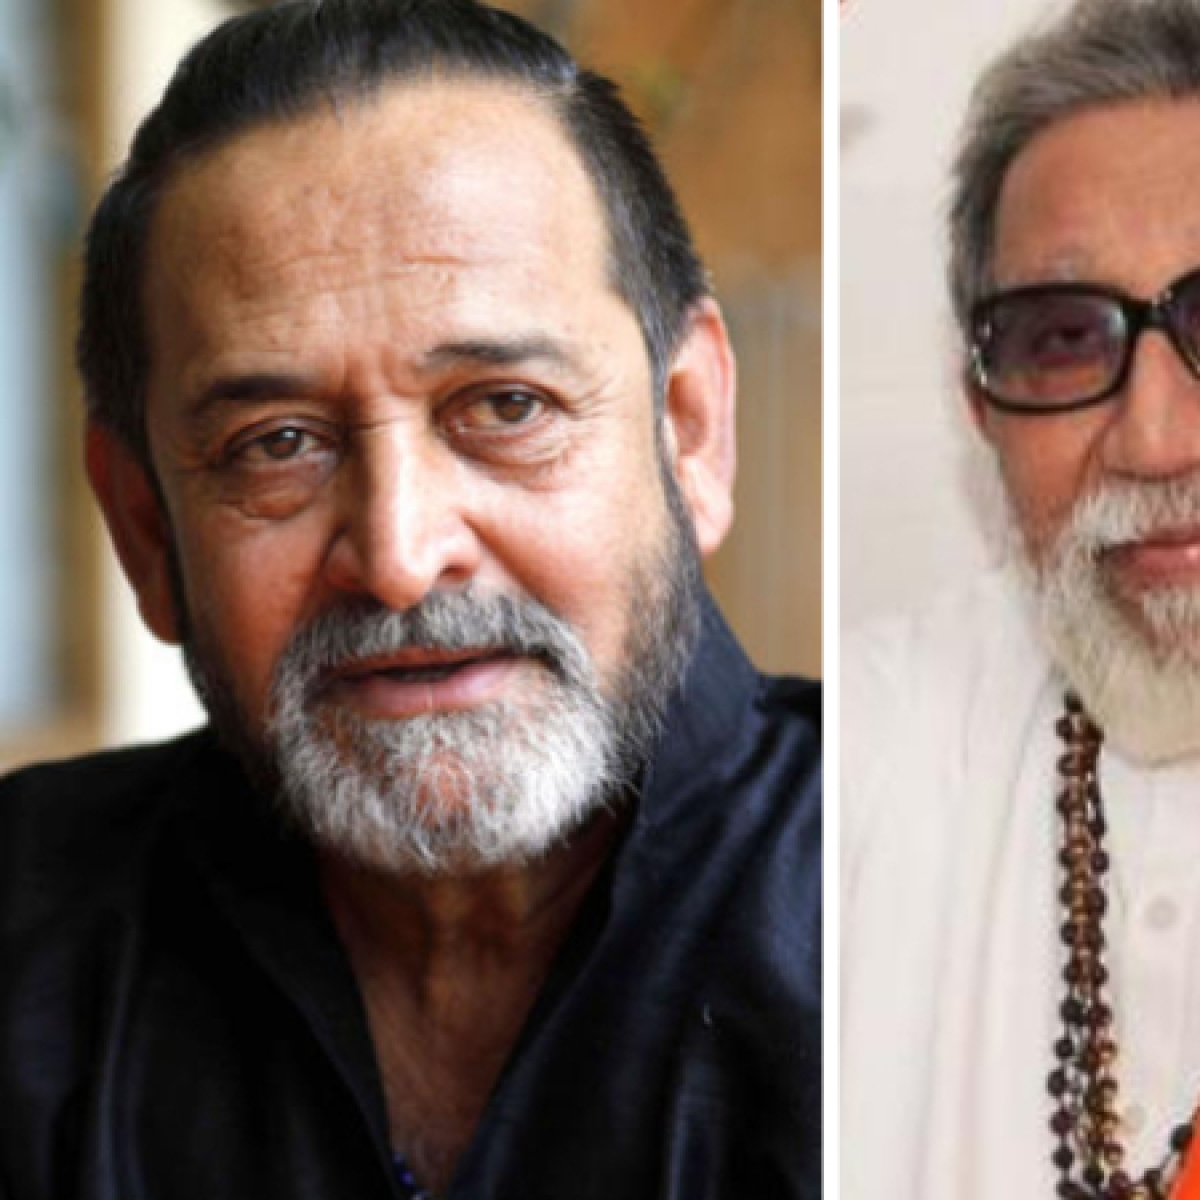 Mahesh Manjrekar to play Shiv Sena supremo Balasaheb Thackeray in 'Mumbai Saga'?